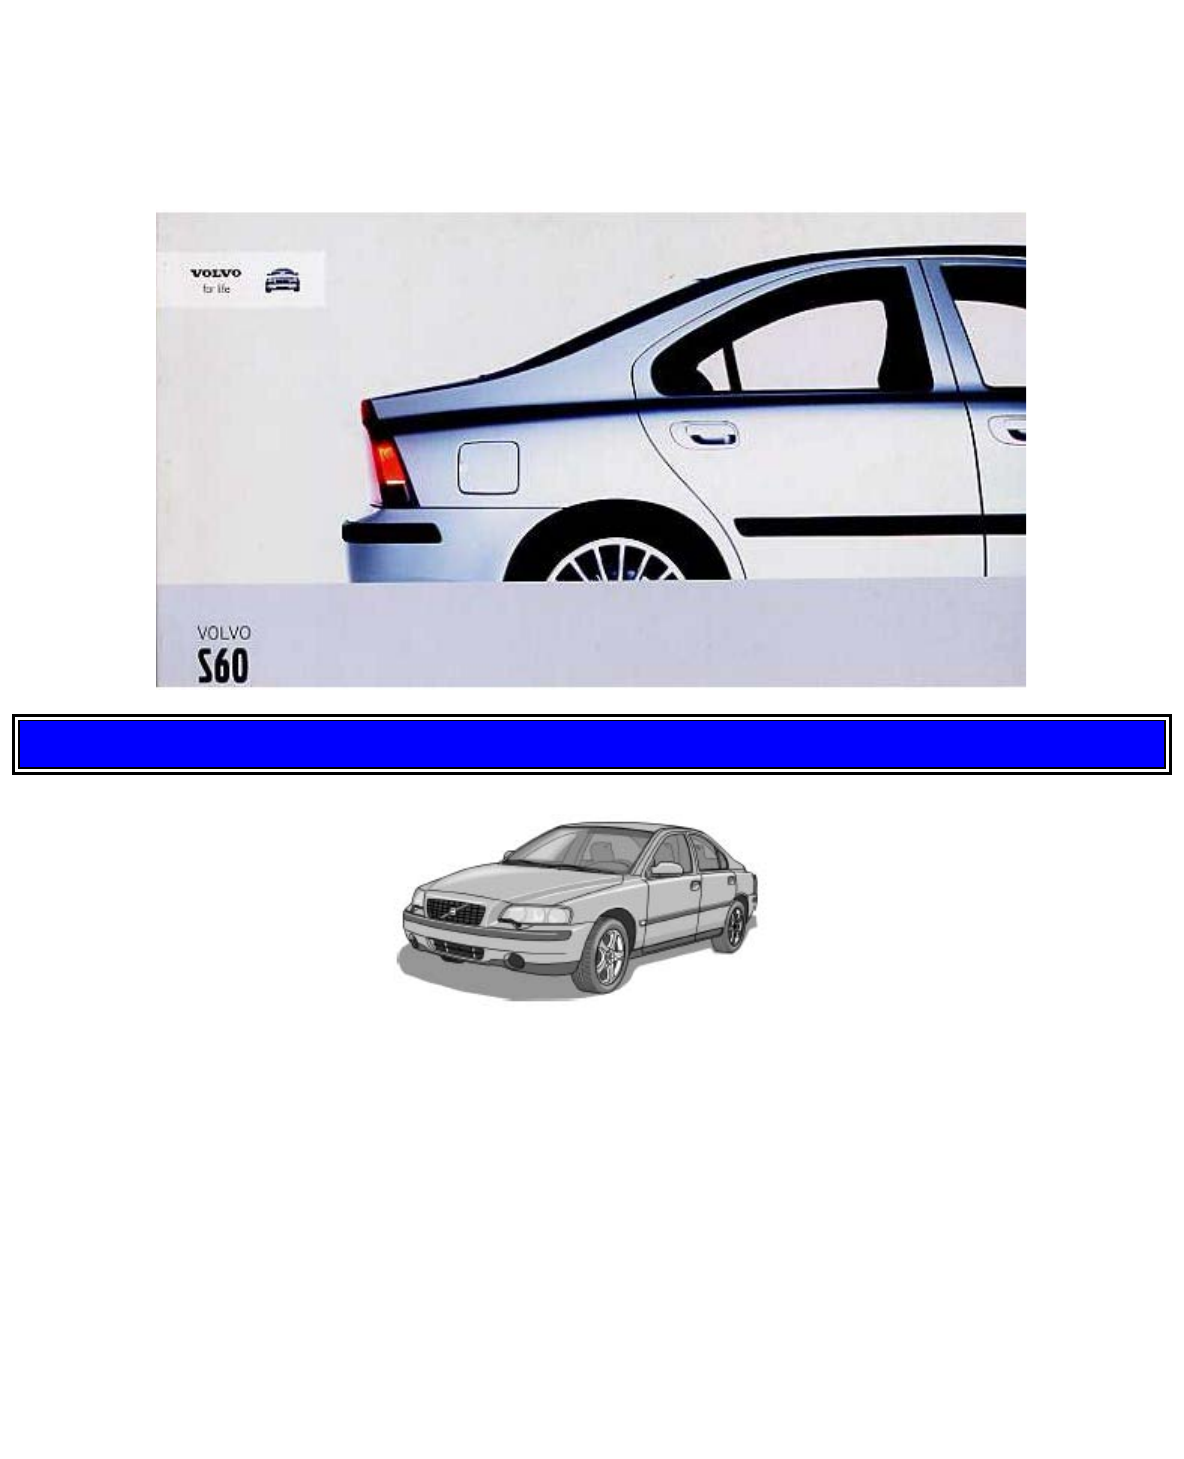 Volvo S60 T2 0 Owners Manual 2004 S60r Fuse Box 2003 Pdf Rh Manuals Co